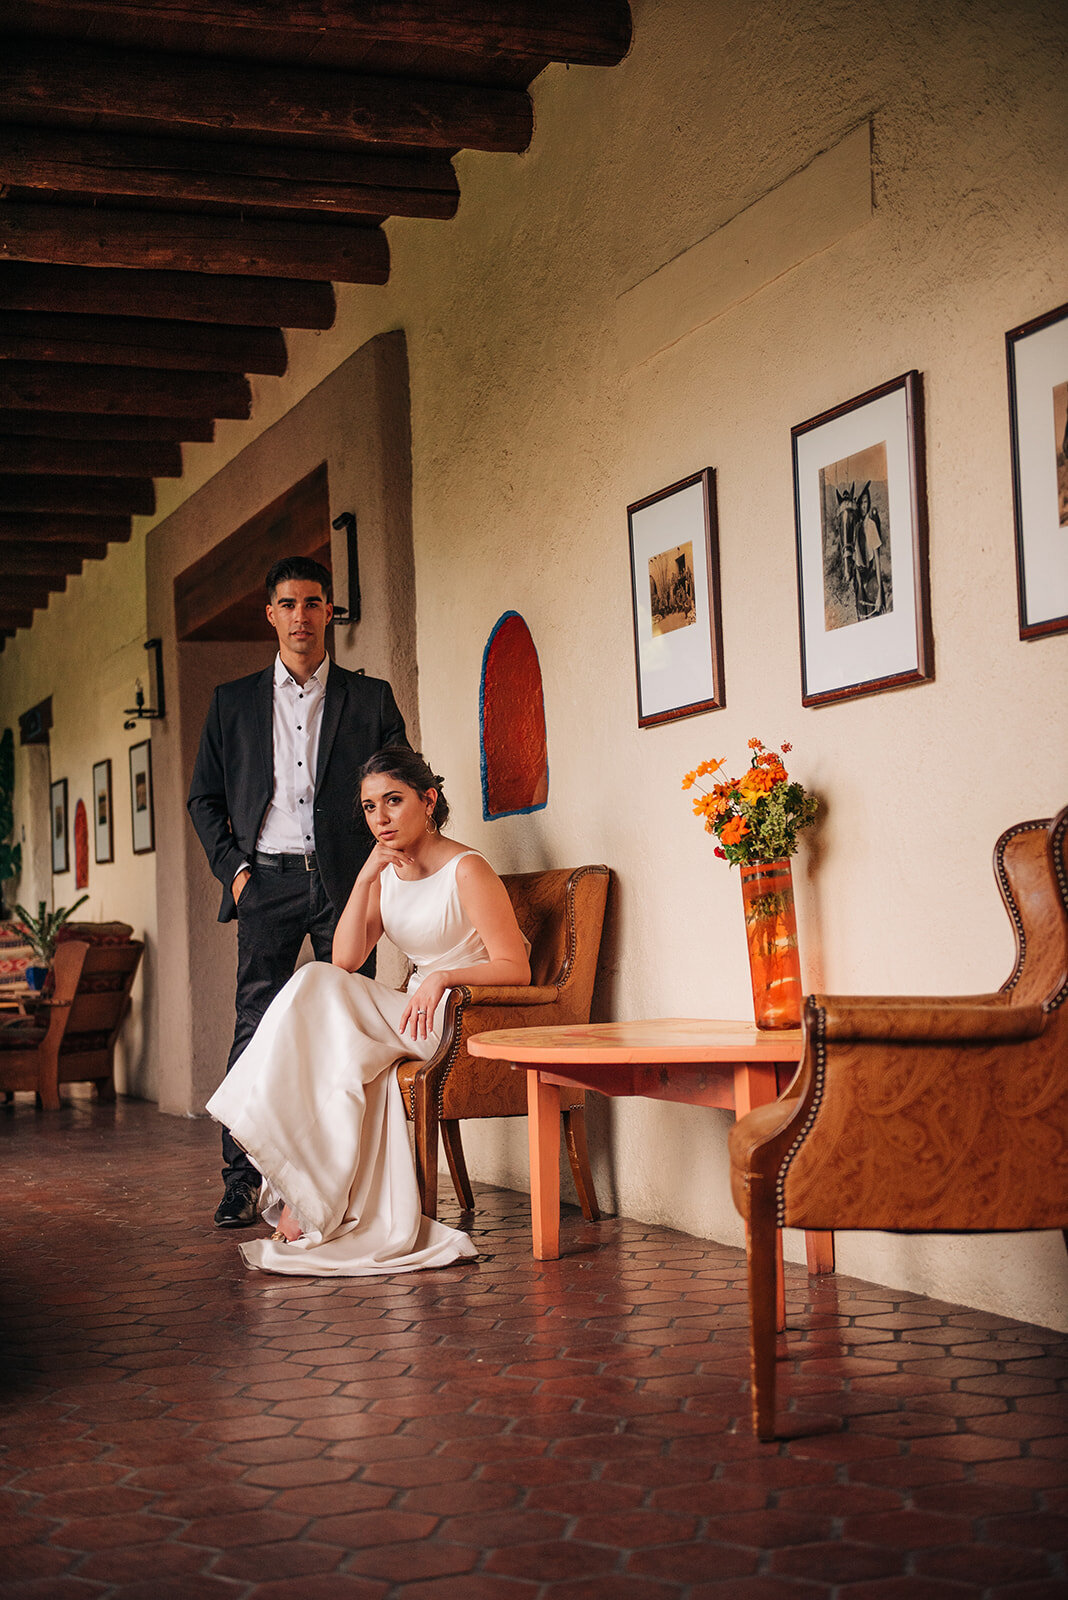 High Fashion Arizona Bride and Groom, Hacienda Del Sol, Tucson, Arizona